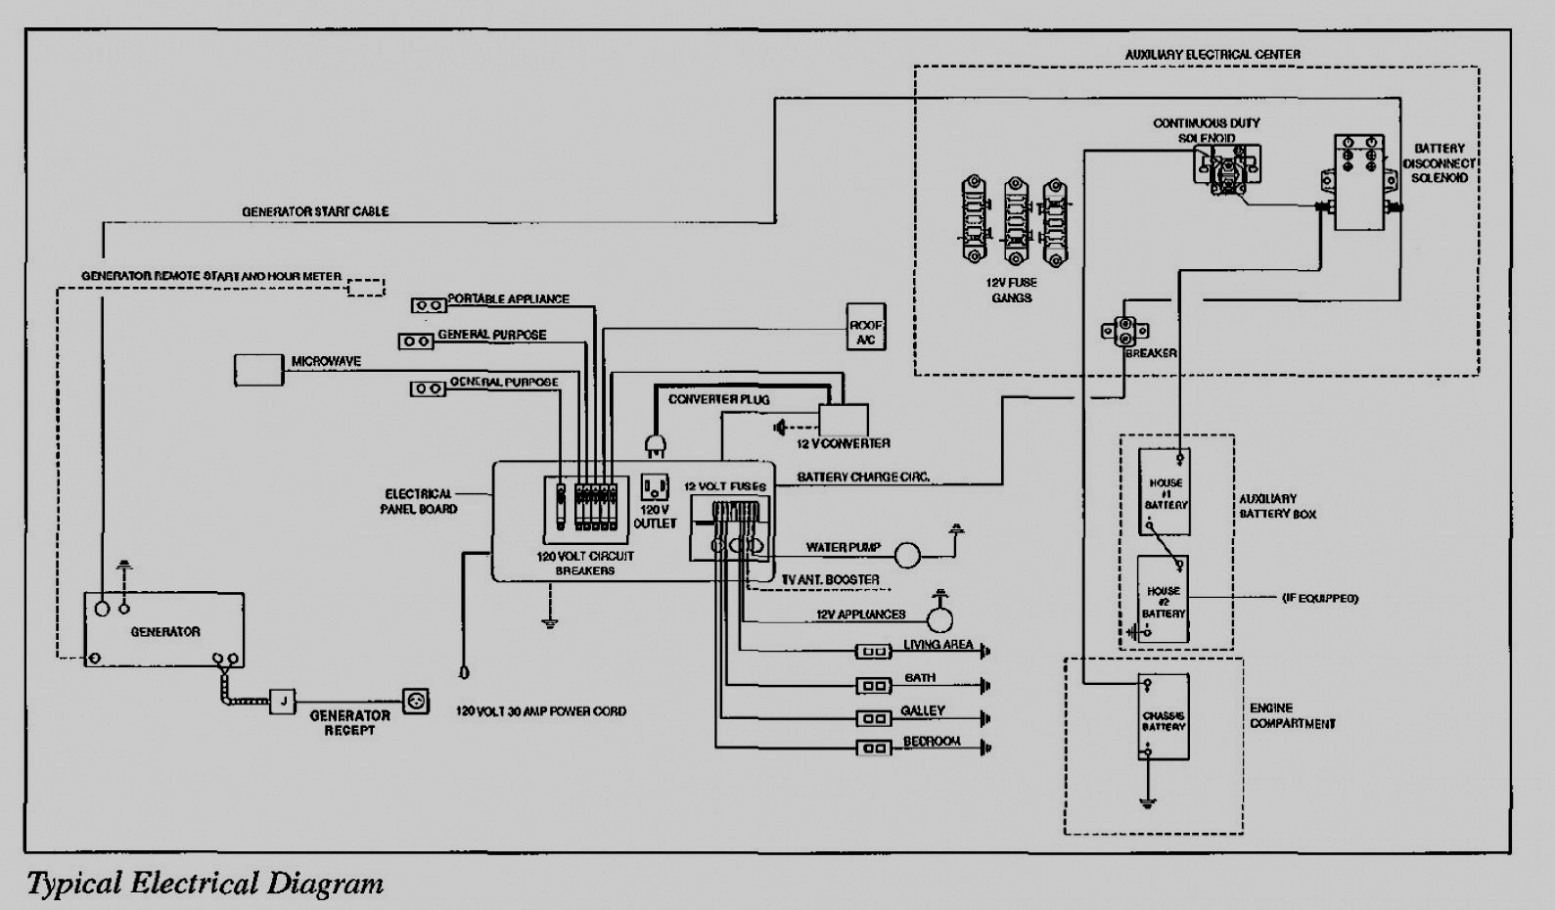 Wfco Power Converter Wiring Diagram from 2020cadillac.com